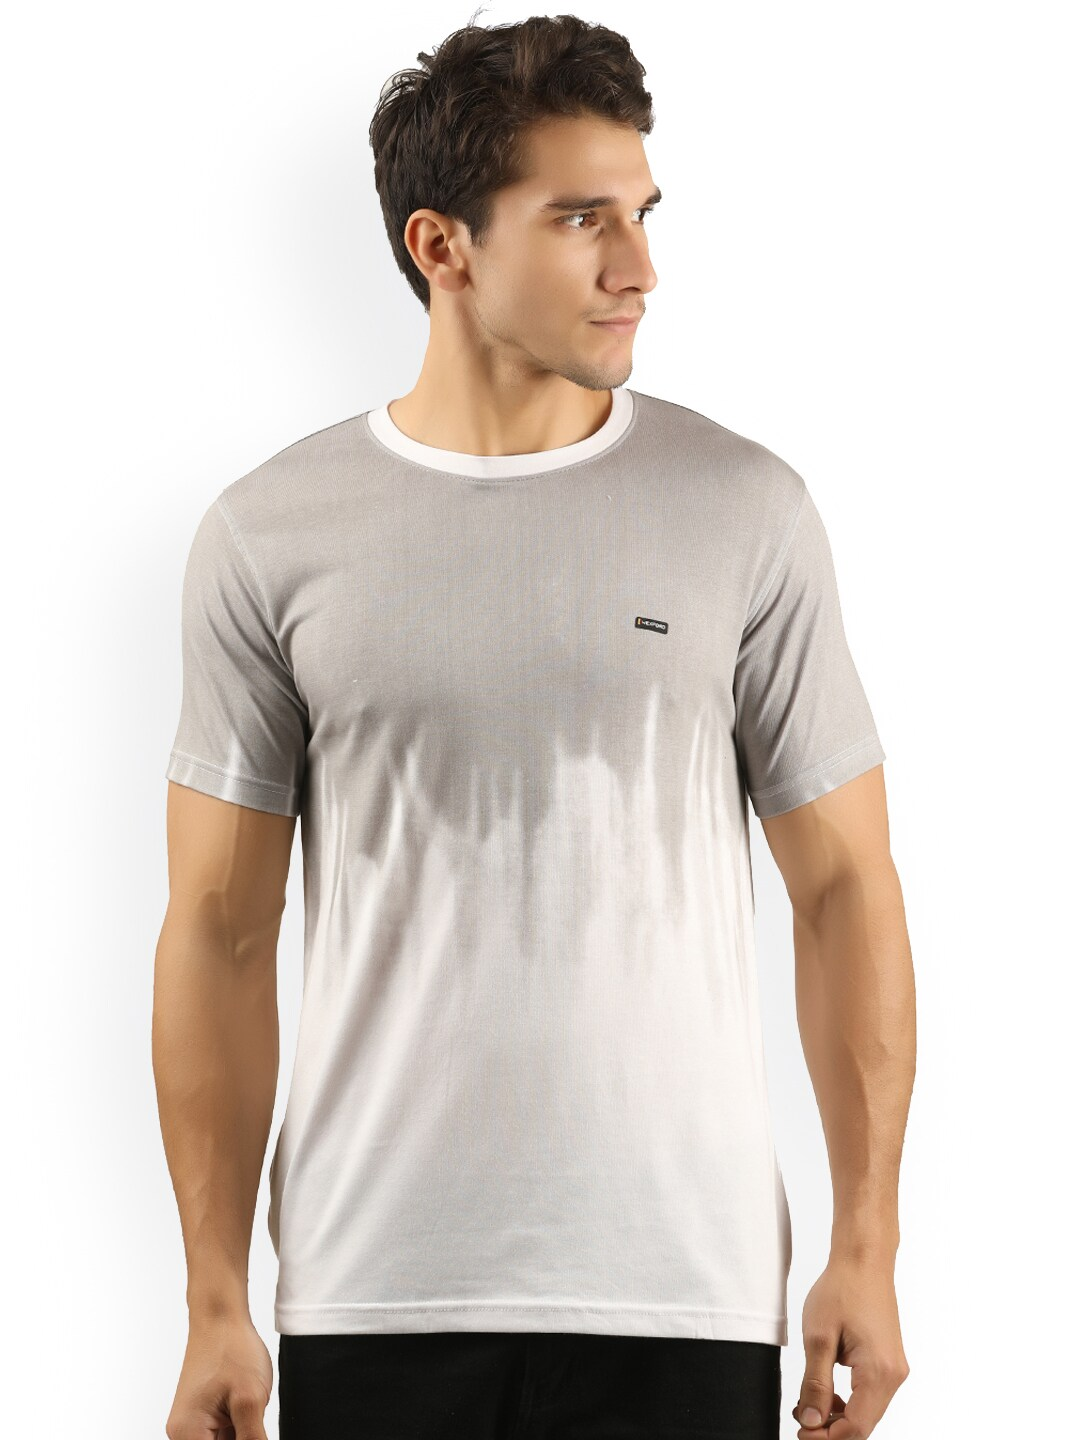 Men T-shirts - Buy T-shirt for Men Online in India  c98f1e23a7